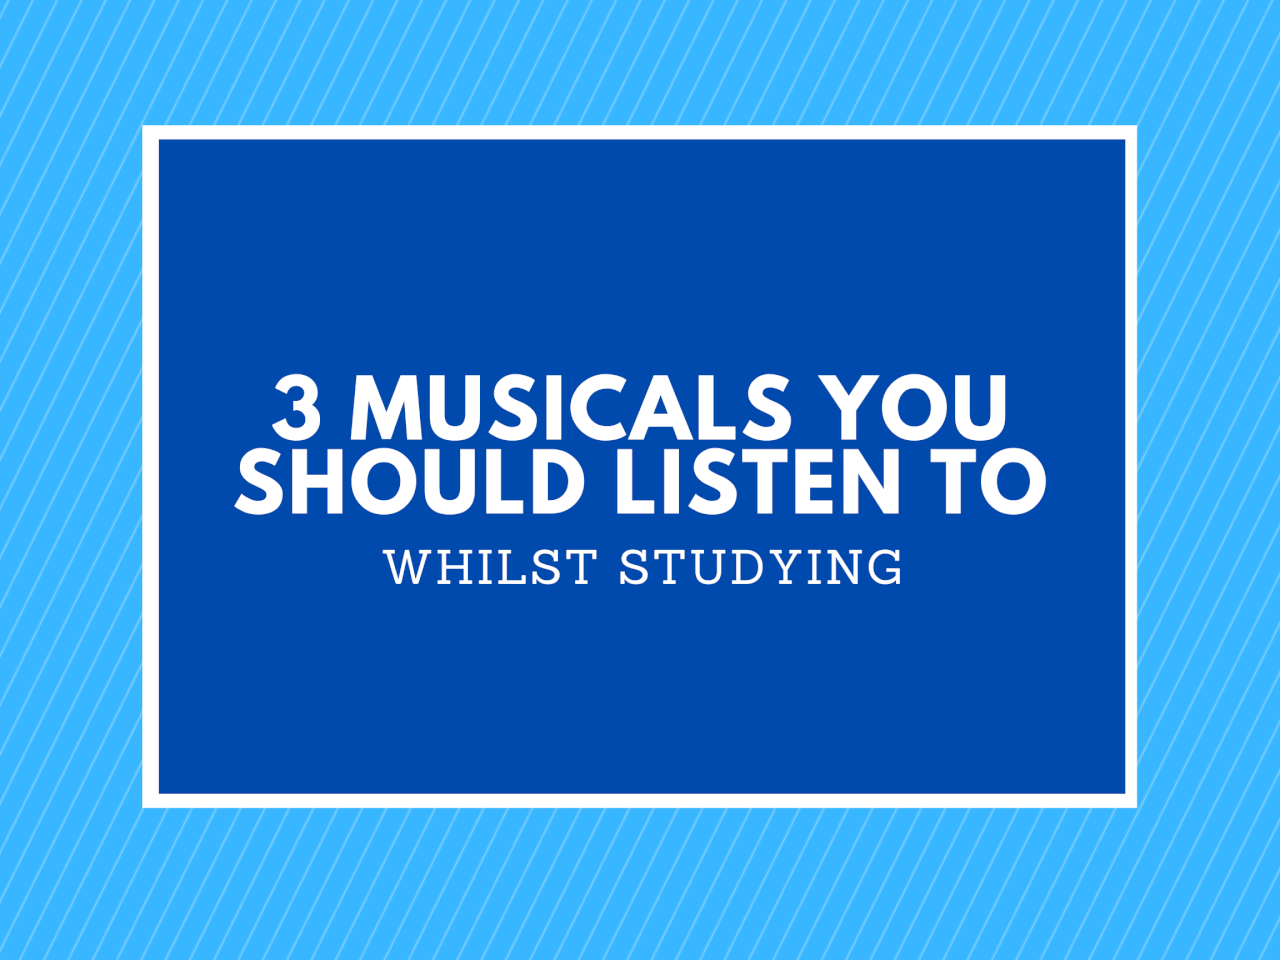 3 MUSICALS YOU SHOULD LISTEN TO WHILST STUDYING